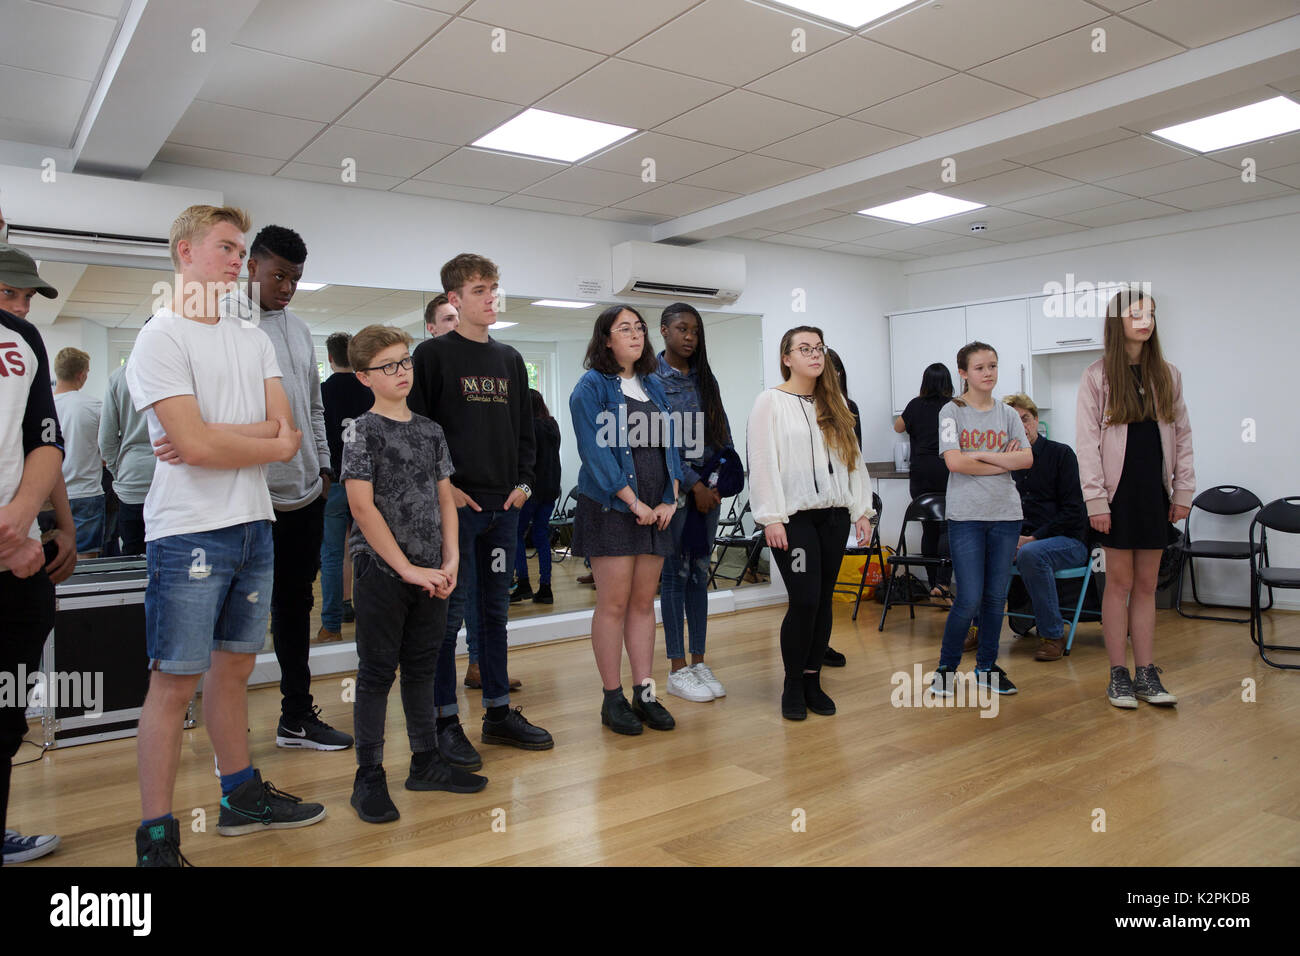 London, UK. 31st Aug, 2017. London's top young buskers took part in a boot camp with music industry experts at the Umbrella Rooms music studios in the heart of the West End before going head-to-head at the Gigs Grand Final at Westfield this Sunday. Twelve competitors have made it through to the Grand Final, where they will battle it out for the title of Gigs Champion 2017 and a range of top prizes including a London Underground busking licence, studio time and busking equipment and a busking trip to Paris Credit: Keith Larby/Alamy Live News Stock Photo